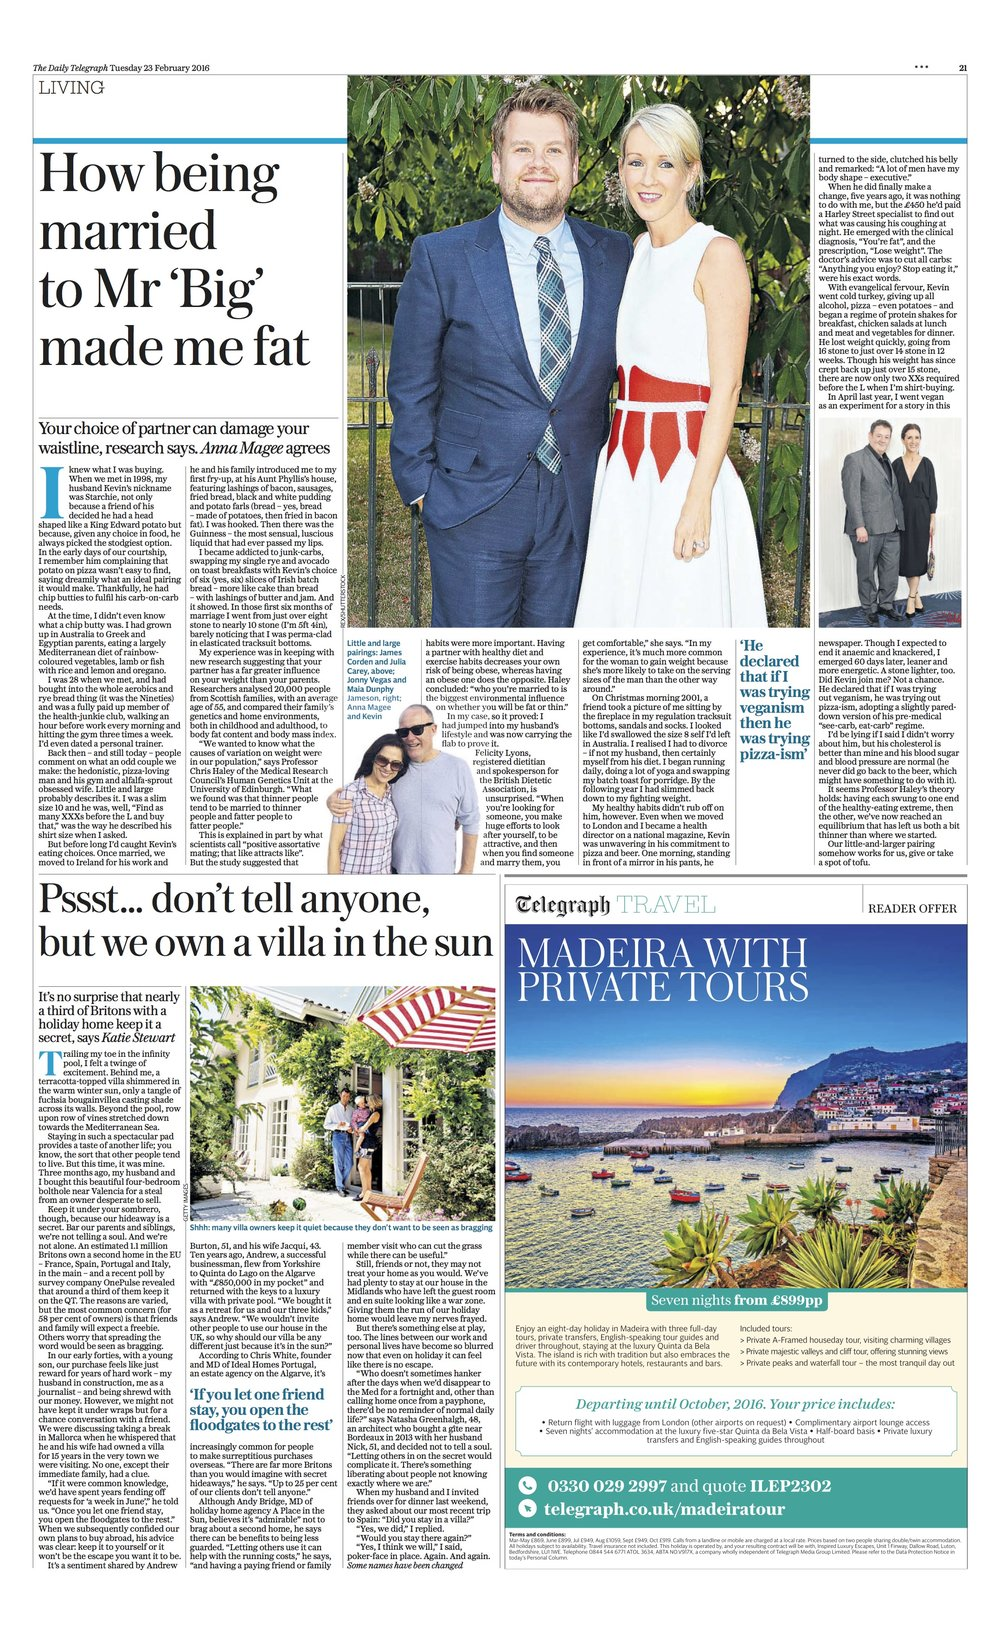 James Corden Daily Telegraph.jpg